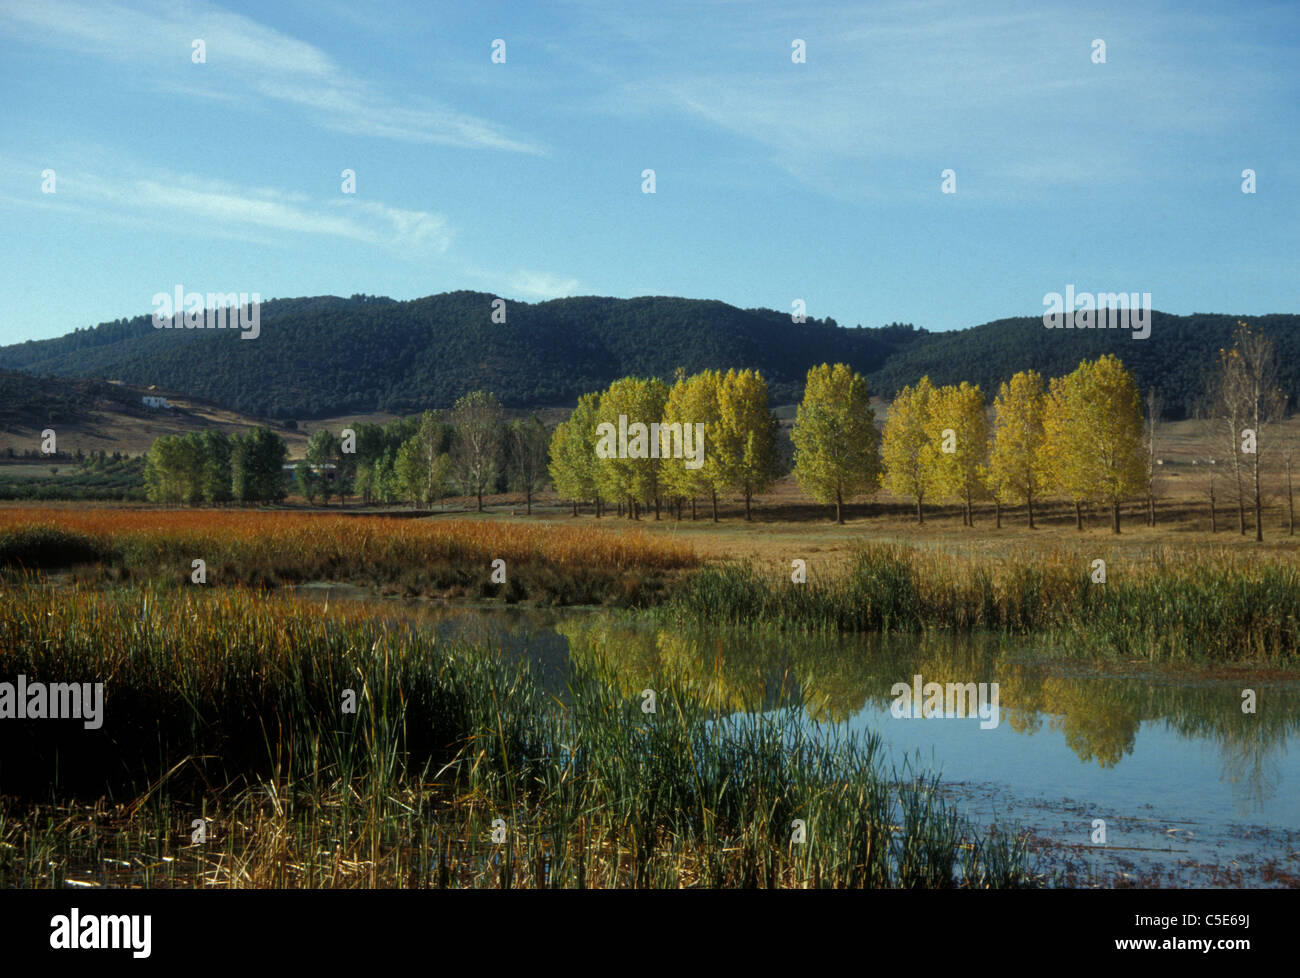 Dait Aoua, lake in the Middle Atlas of Morocco - Stock Image